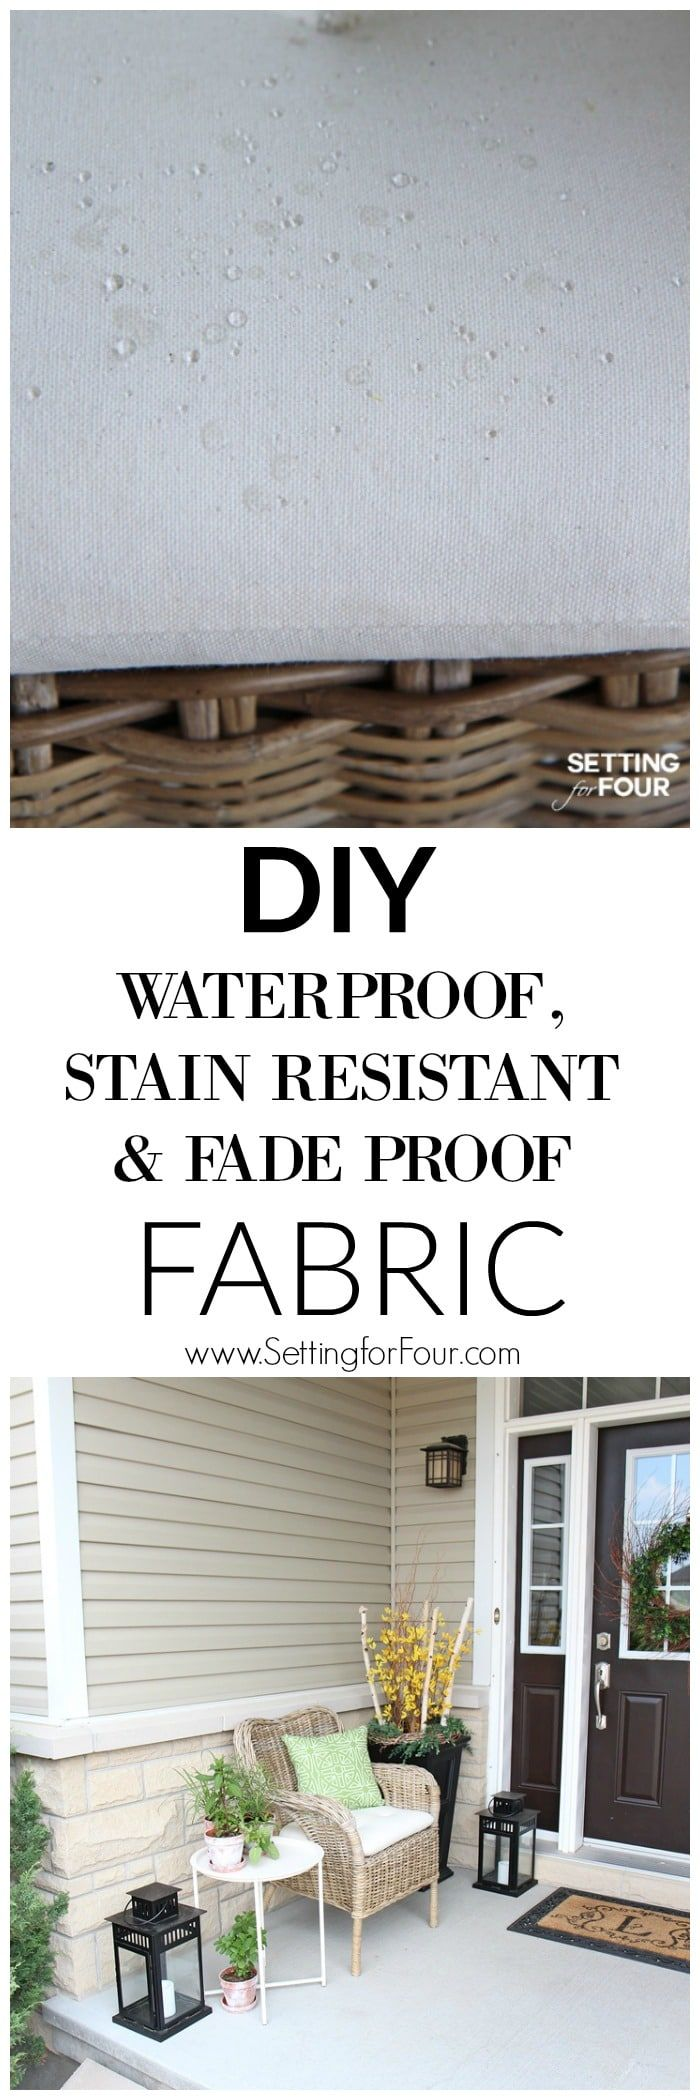 Turn Indoor Cushions Into Outdoor Cushions With This AMAZING Water Seal  Spray! Makes The Fabric